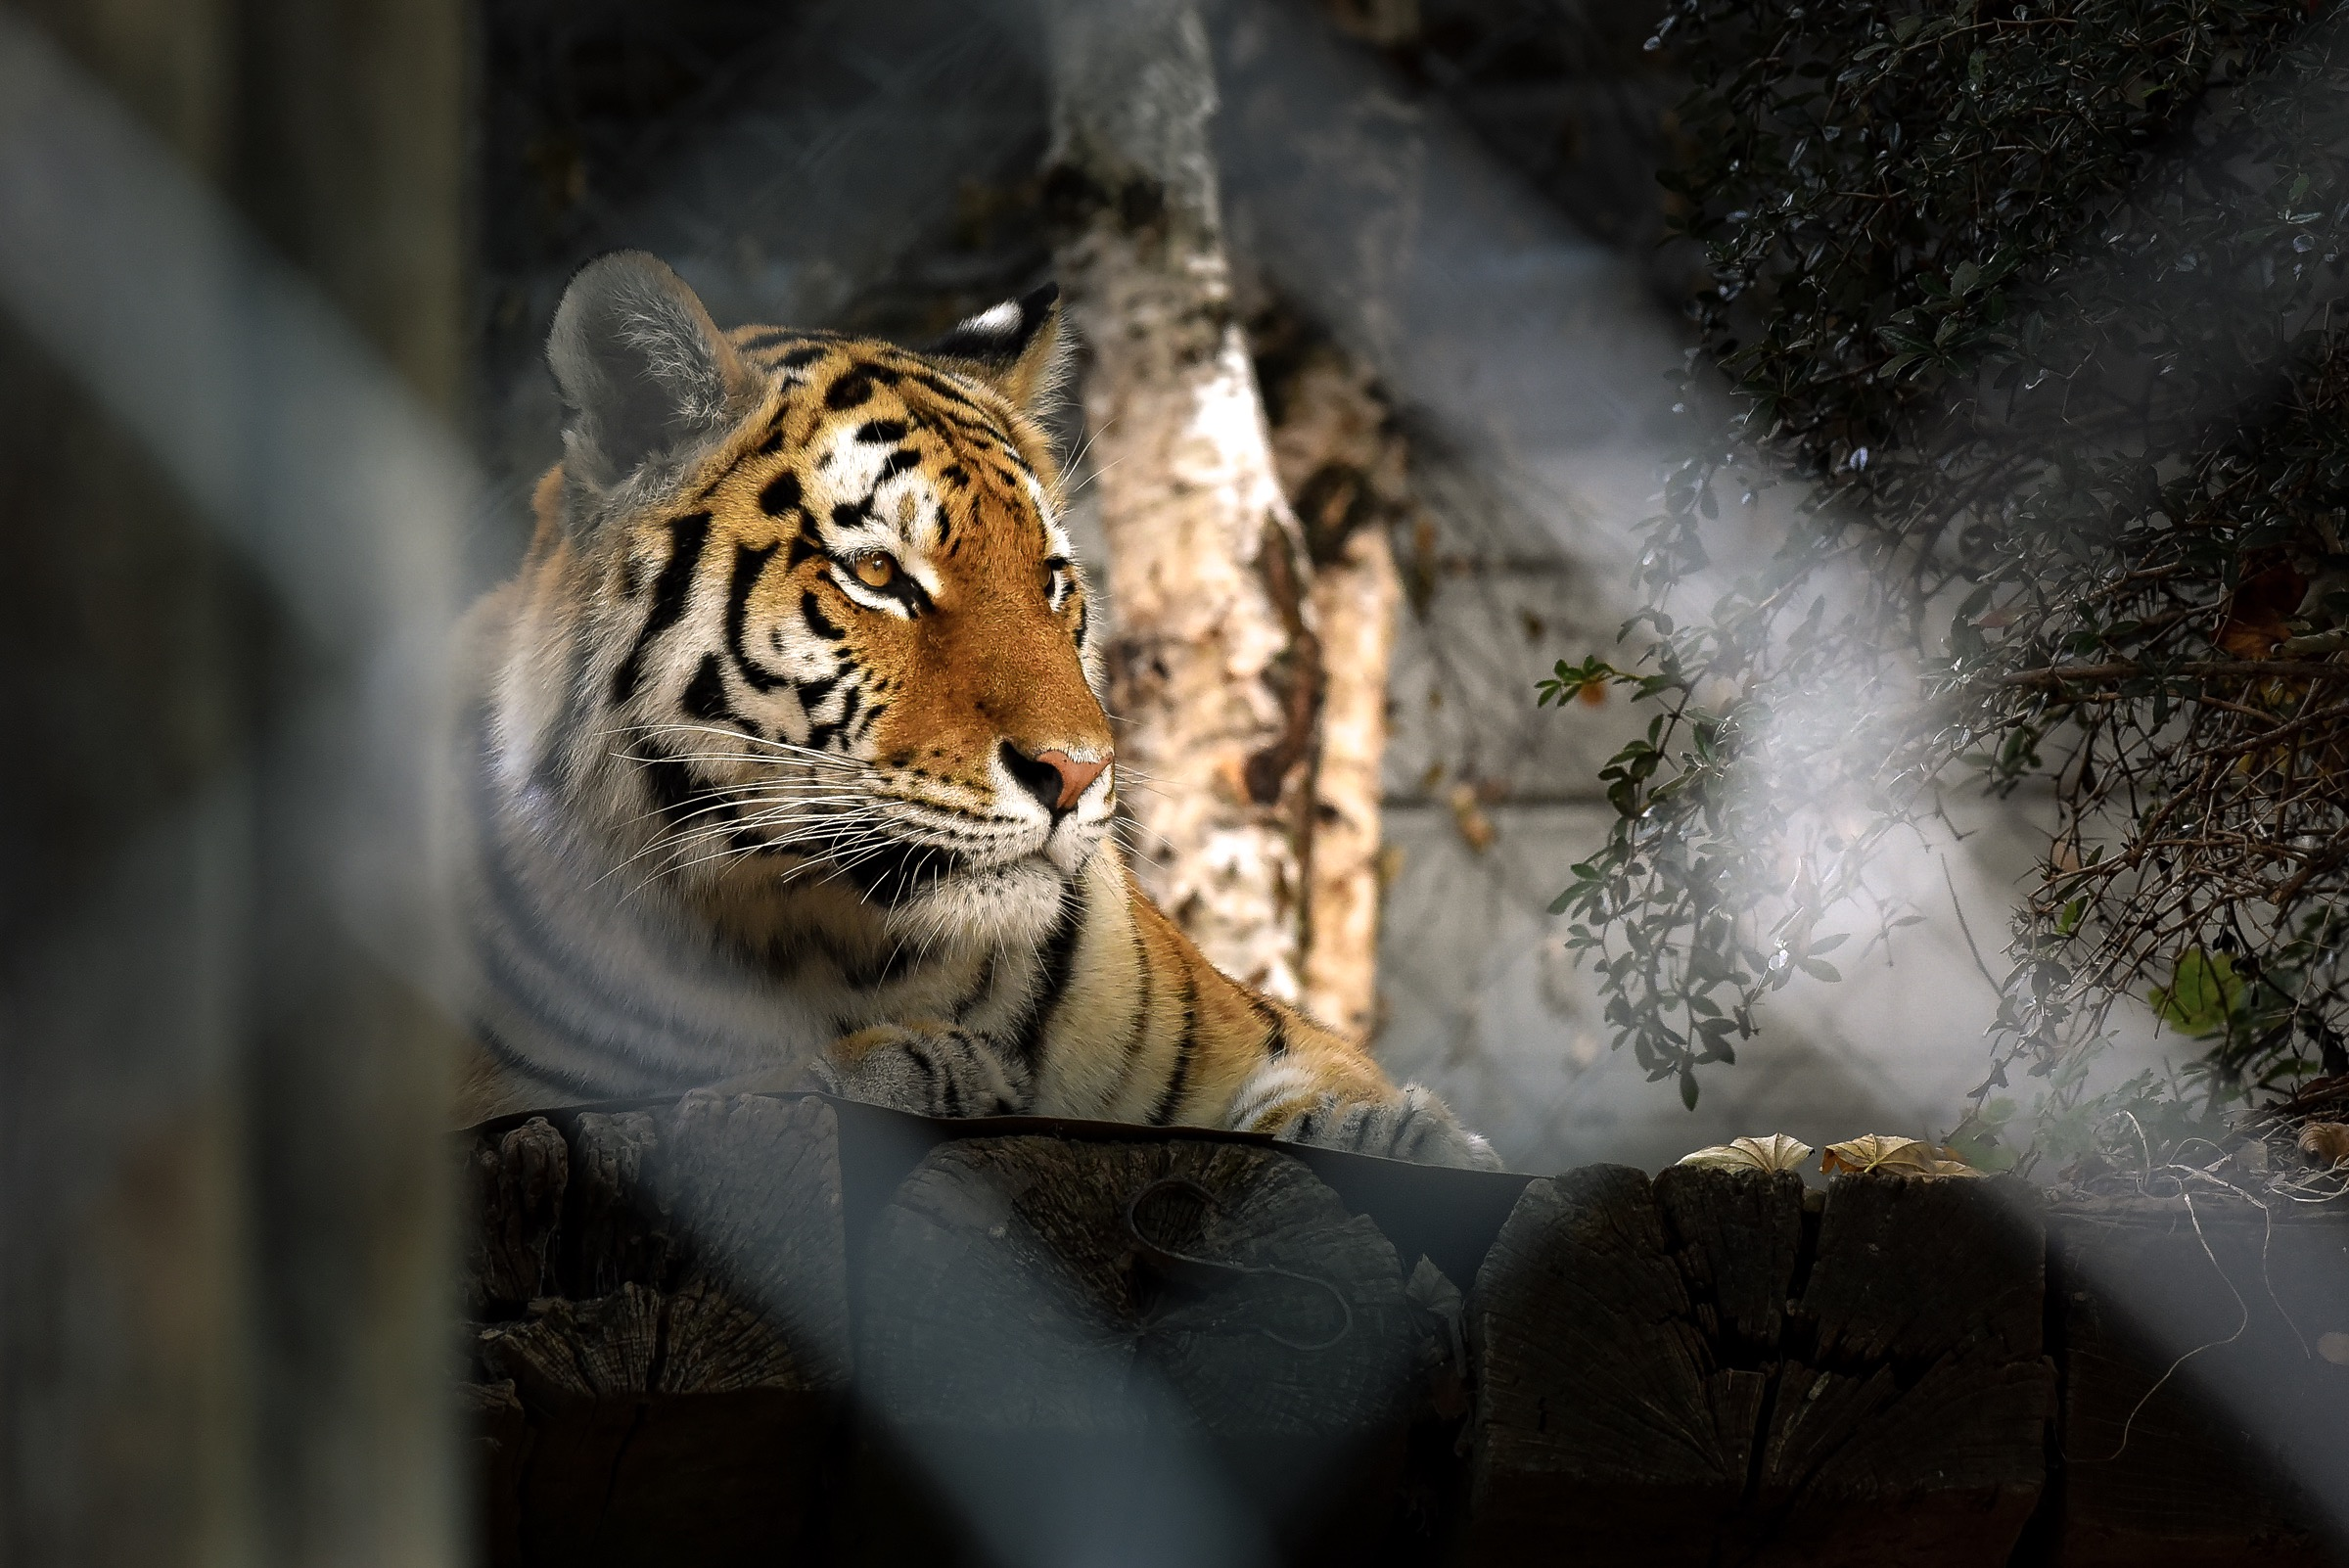 Tiger in Cage...